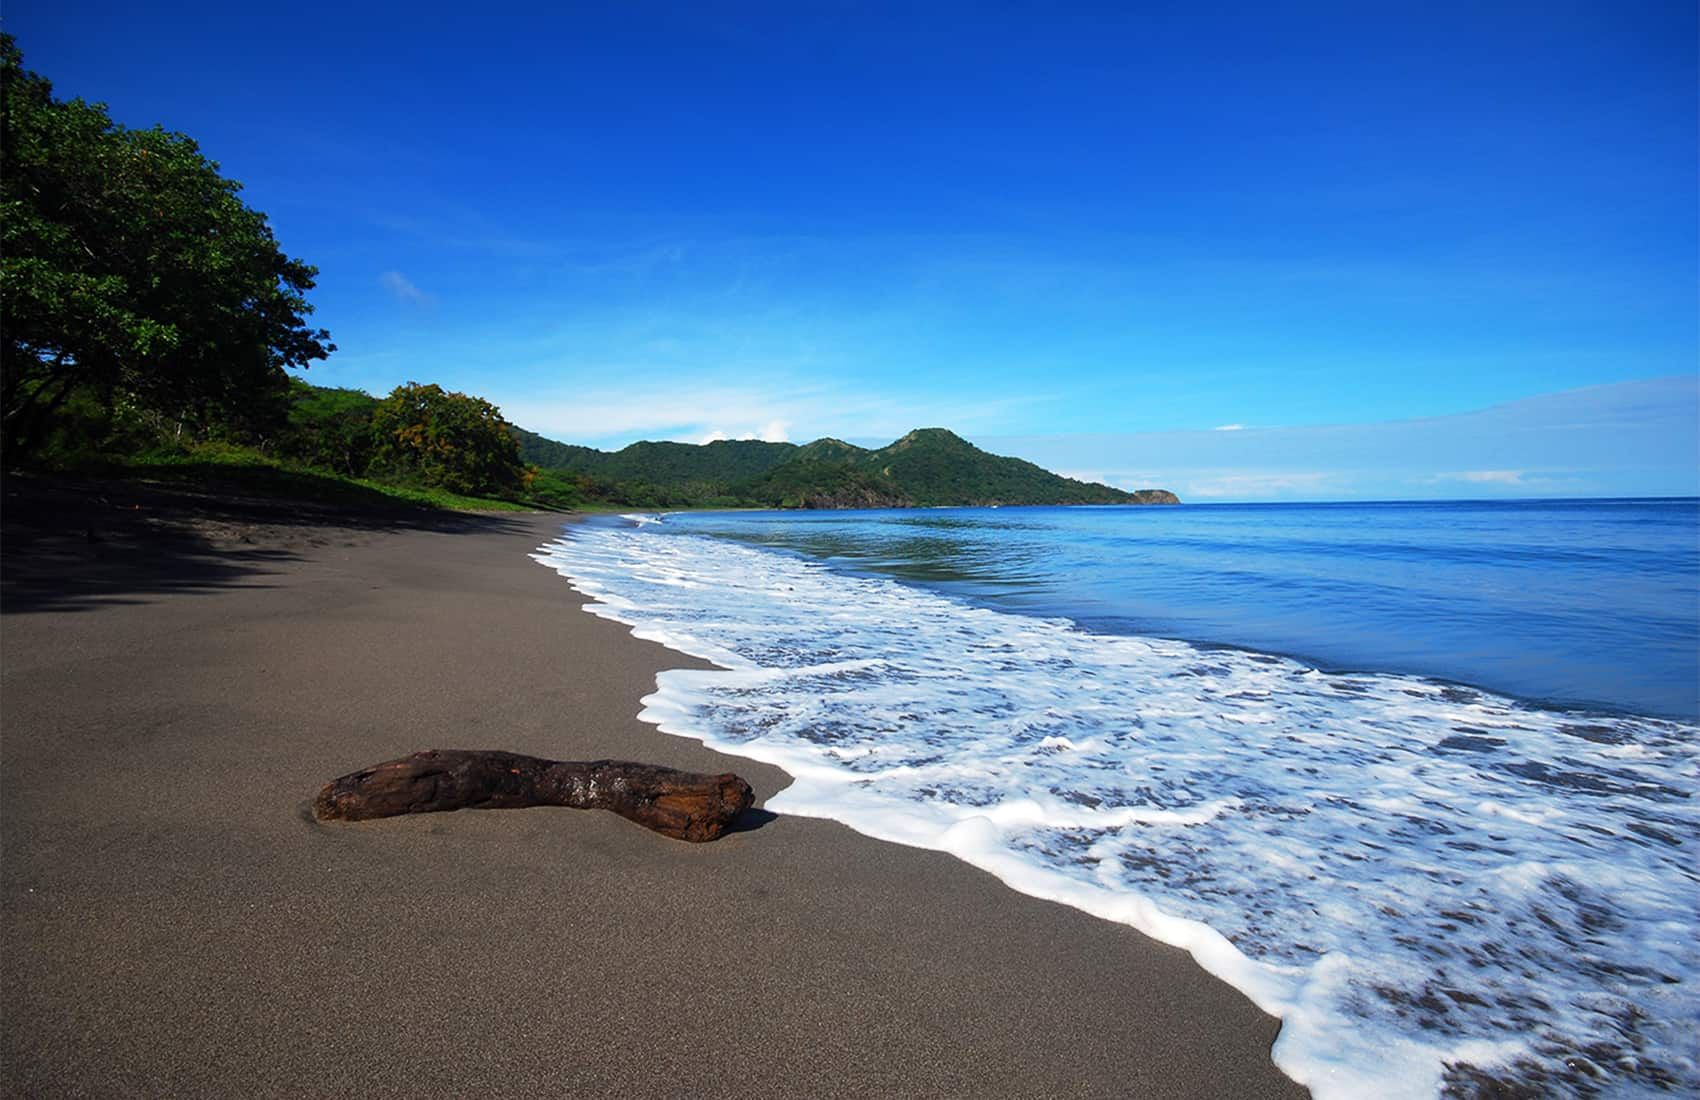 Matapalo Beach In Northern Guanacaste Is One Of Three Beaches Awarded A Blue Flag With Five Stars 2017 The Costa Rica S Highest Ranking For Cleanliness